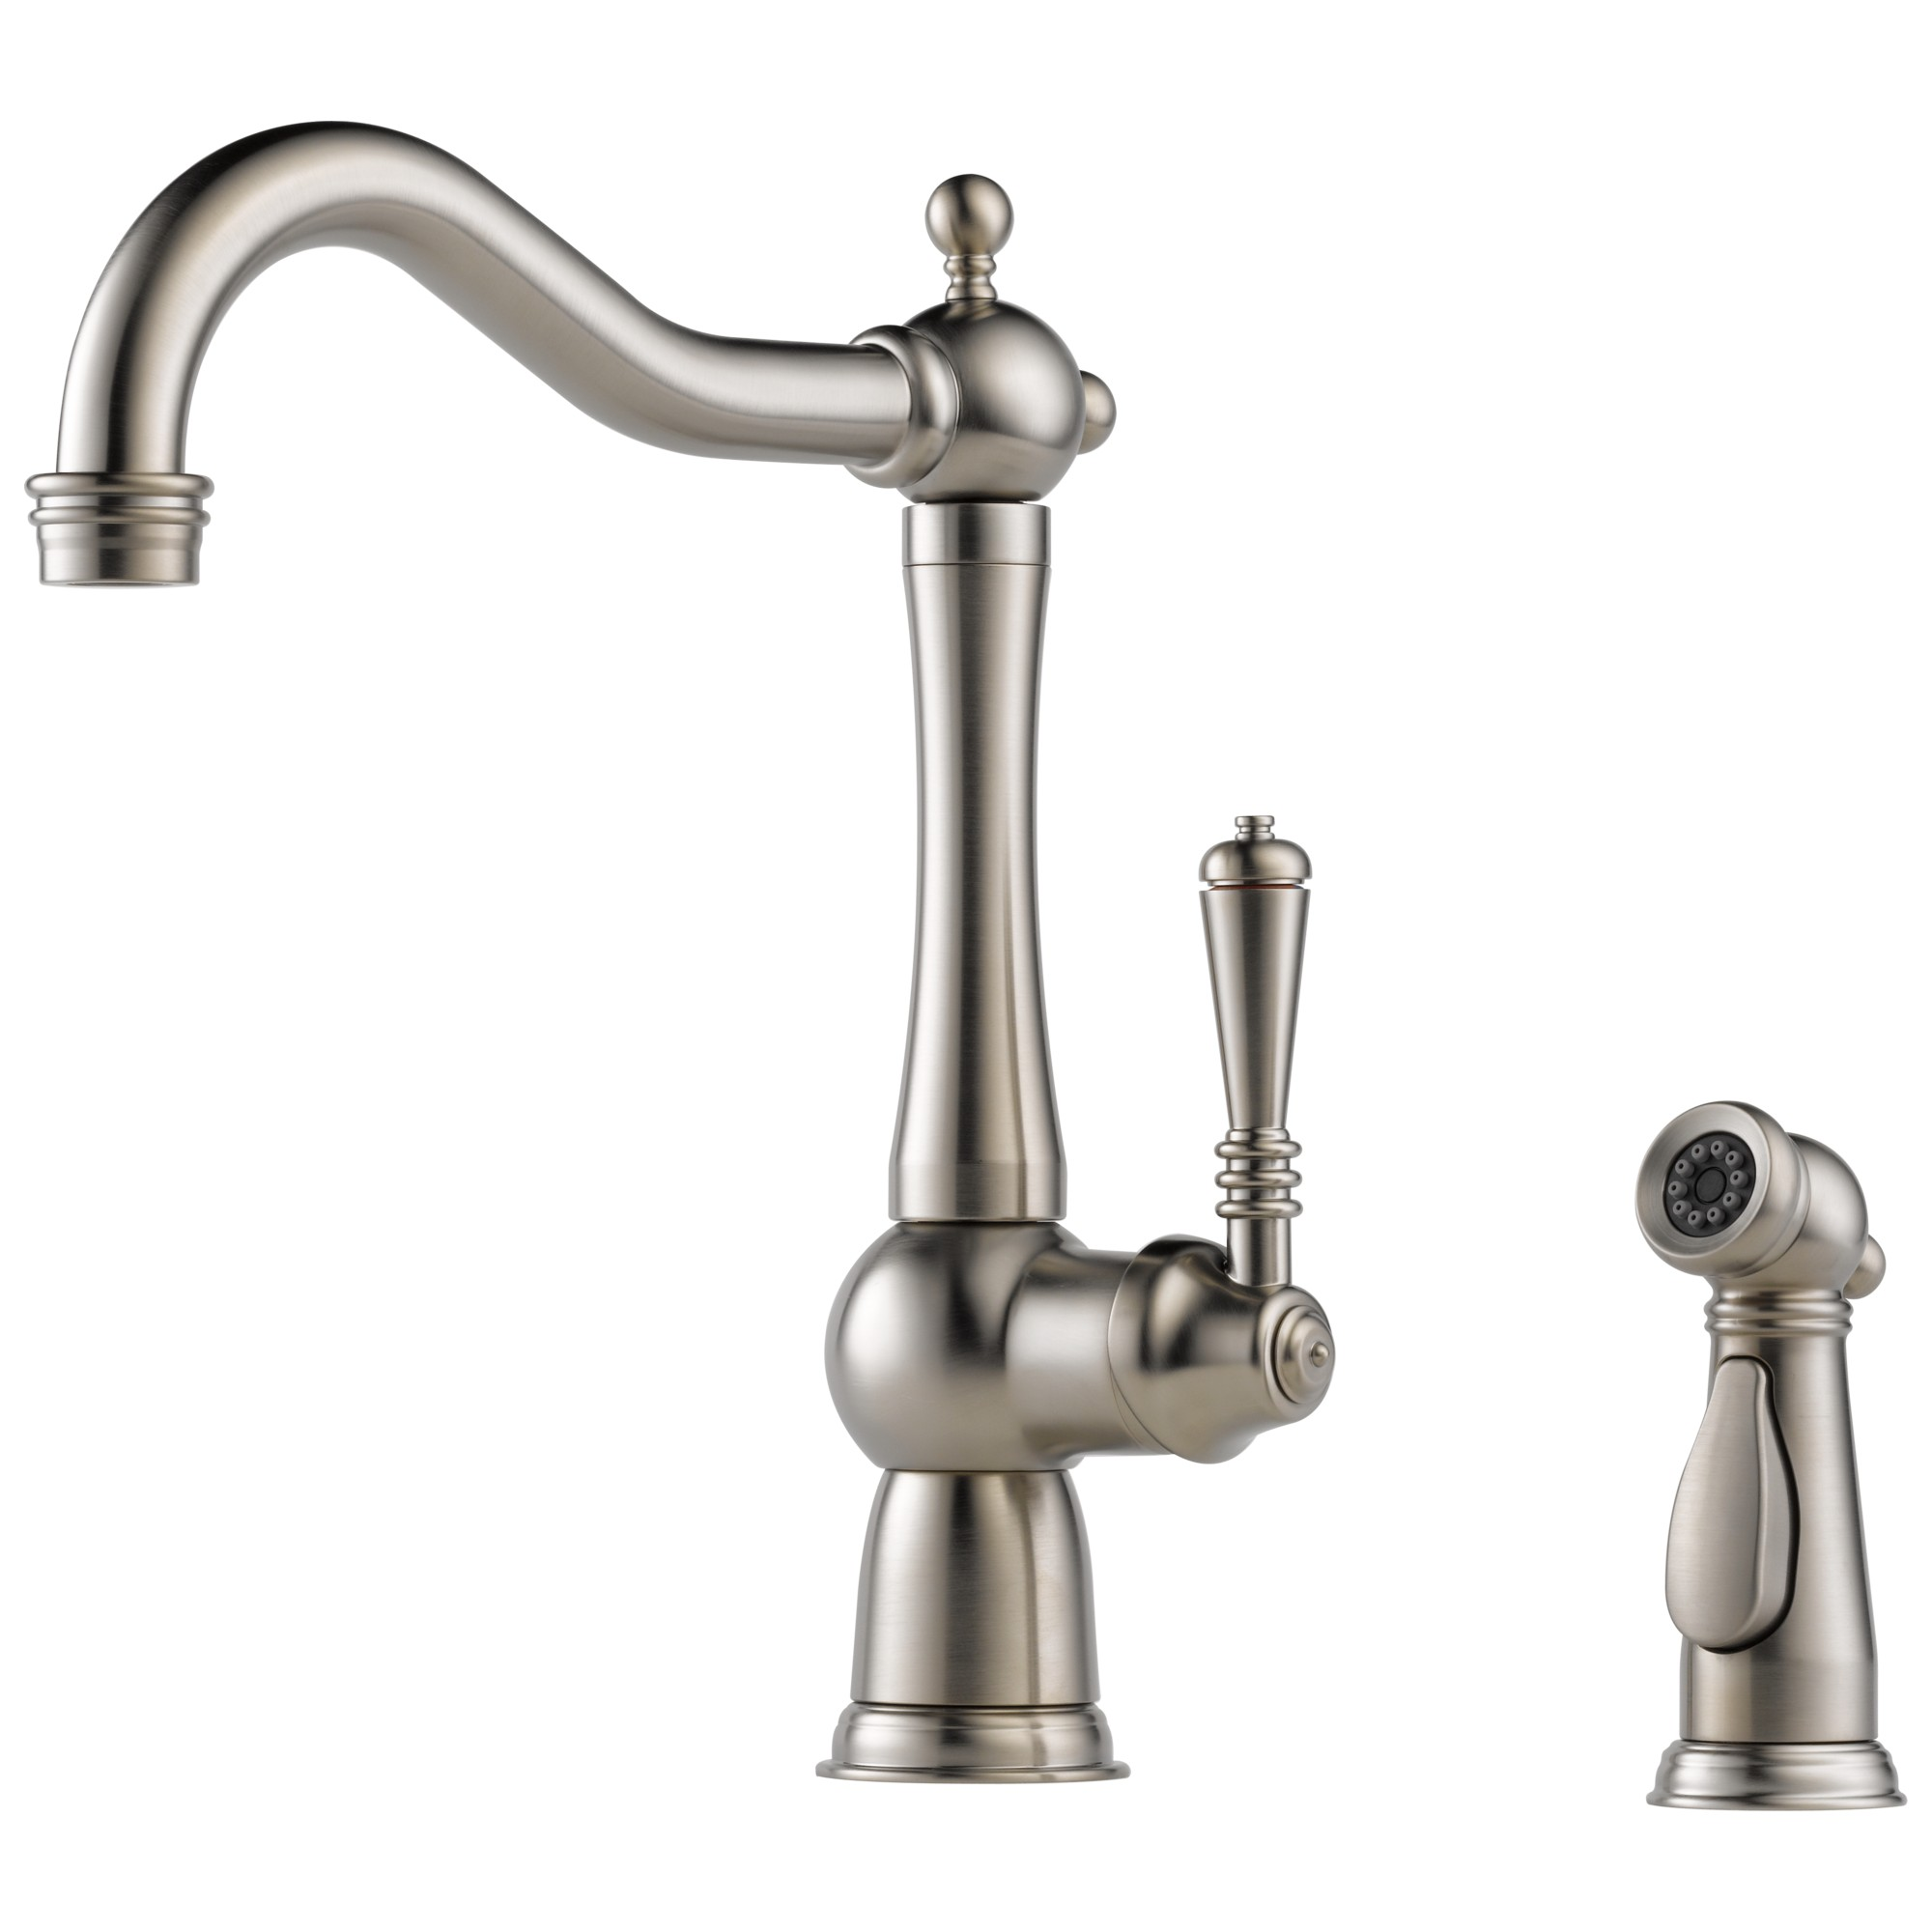 Brizo 61136LF-SS Tresa Single Handle Kitchen Faucet with Spray - Stainless